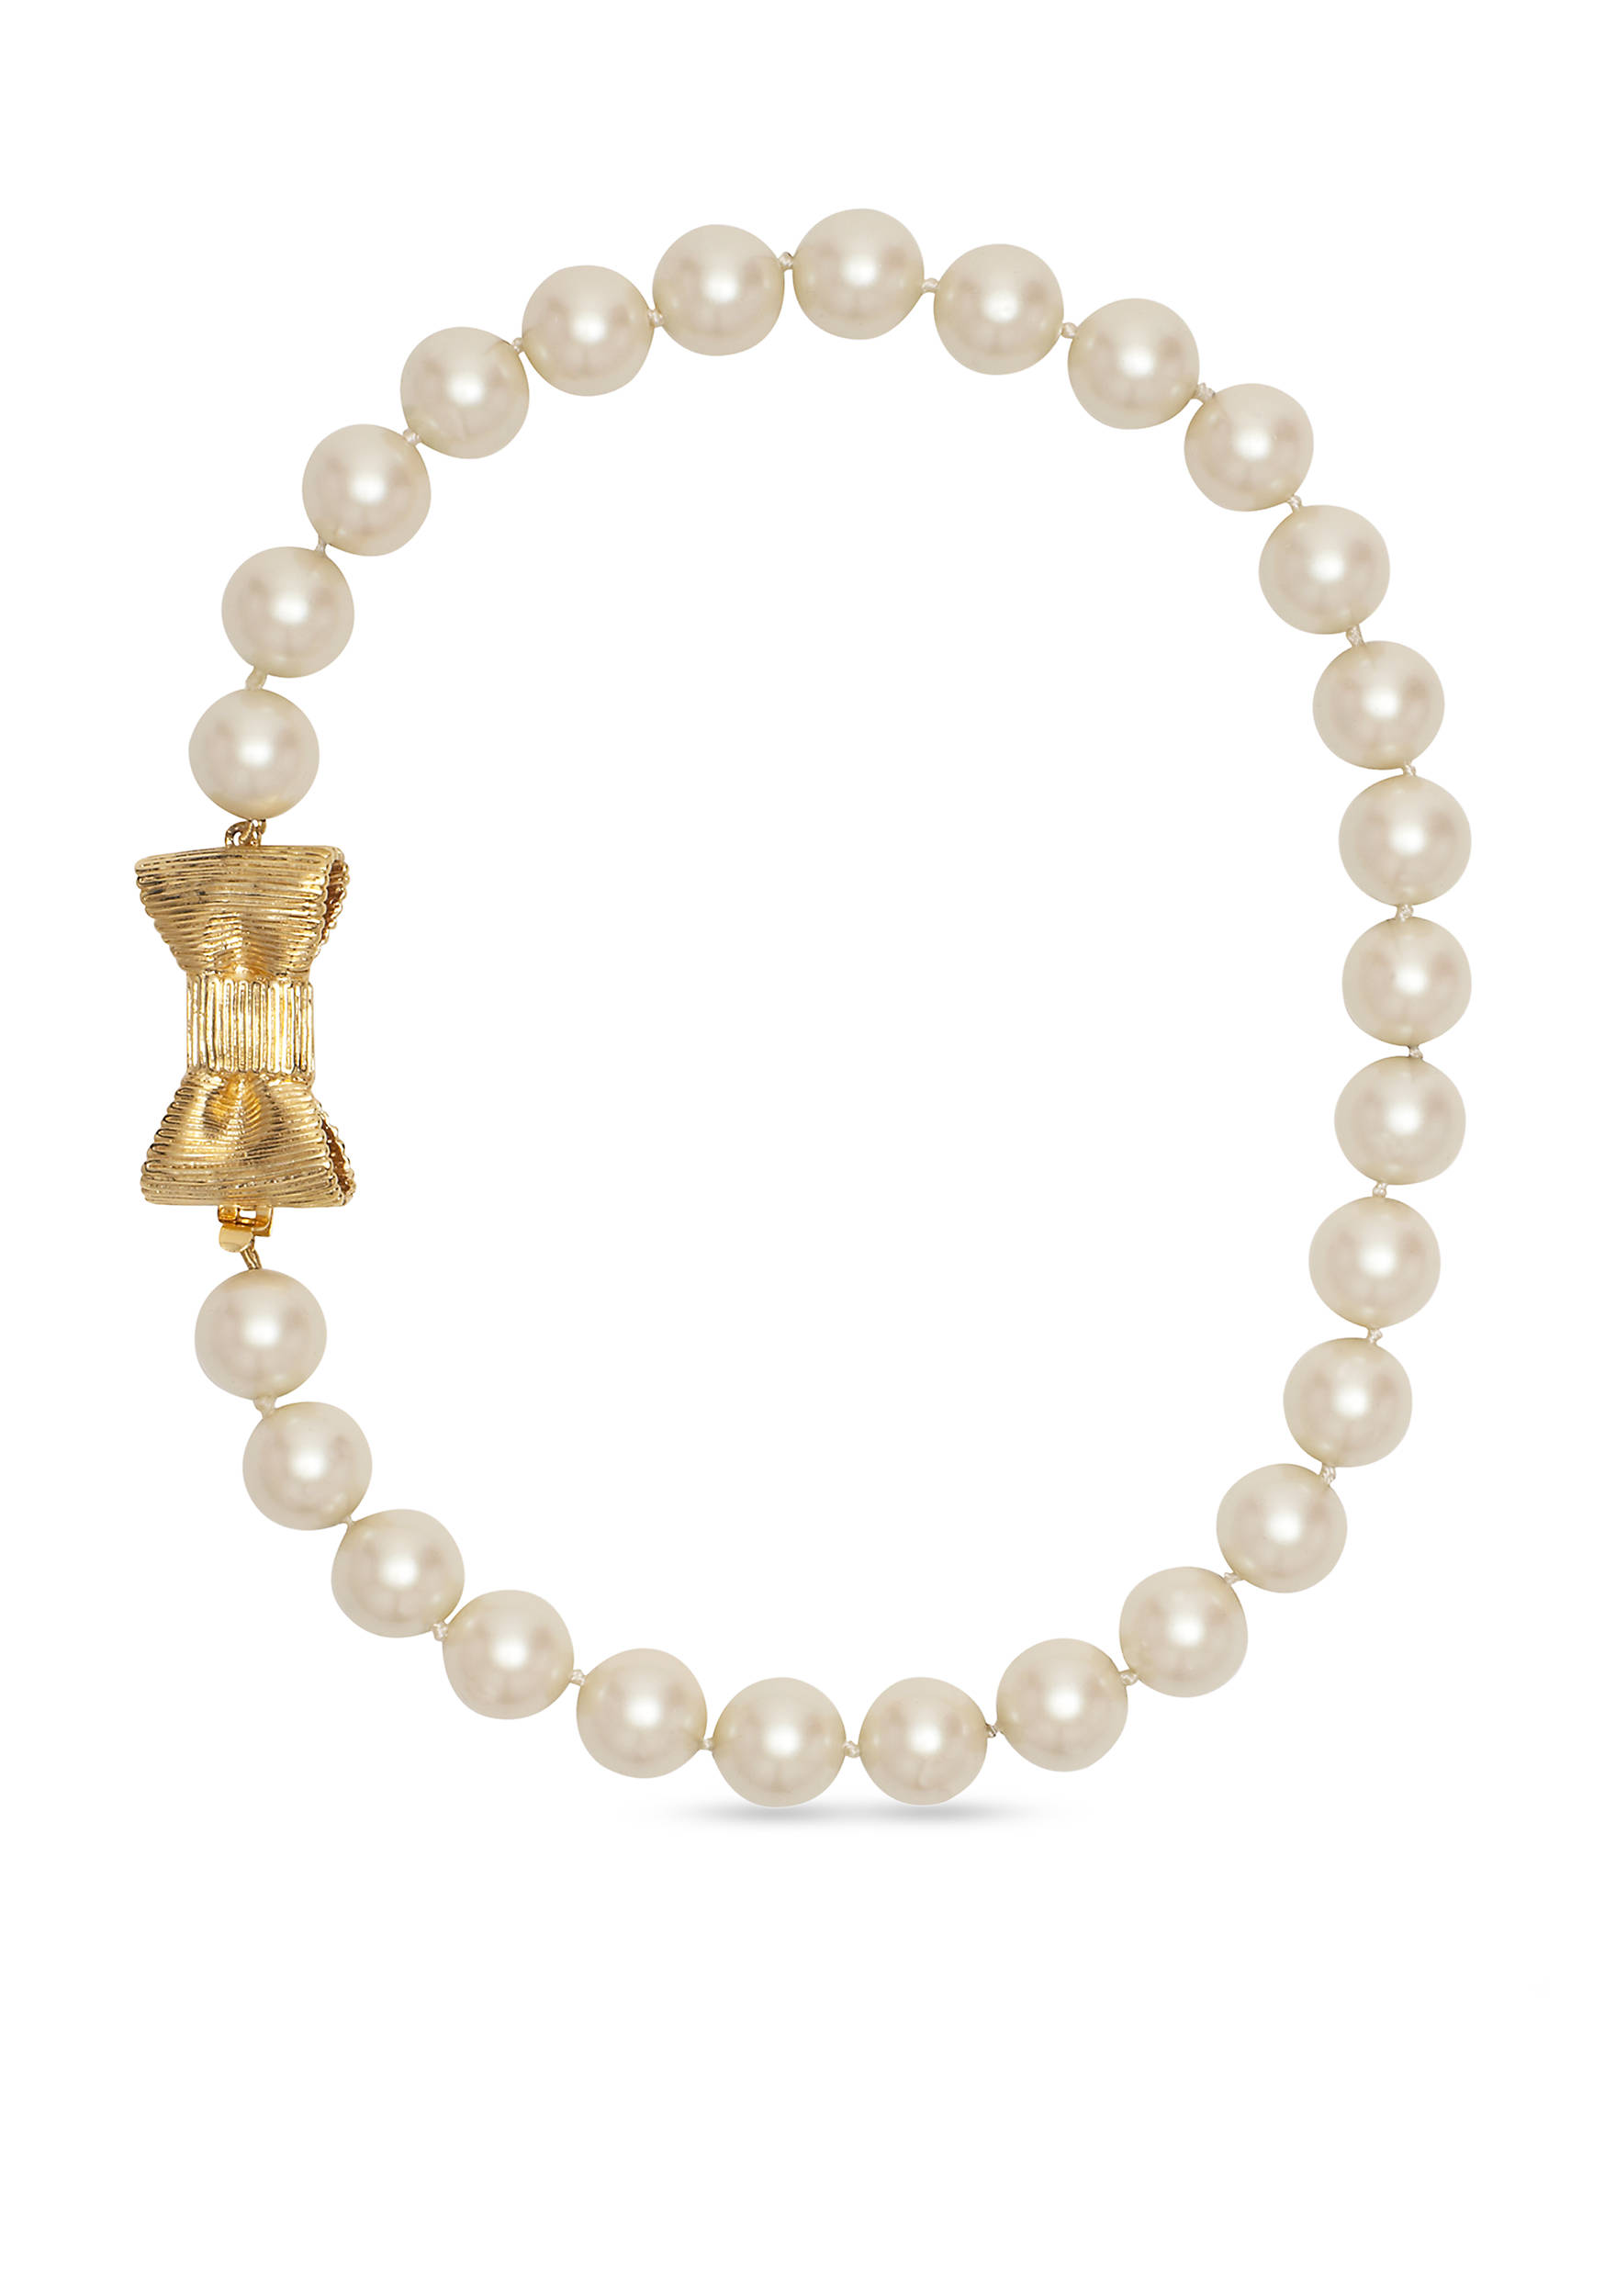 Kate Spade New York® All Wrapped Up Pearl Necklace 5800231wbru3301 Images